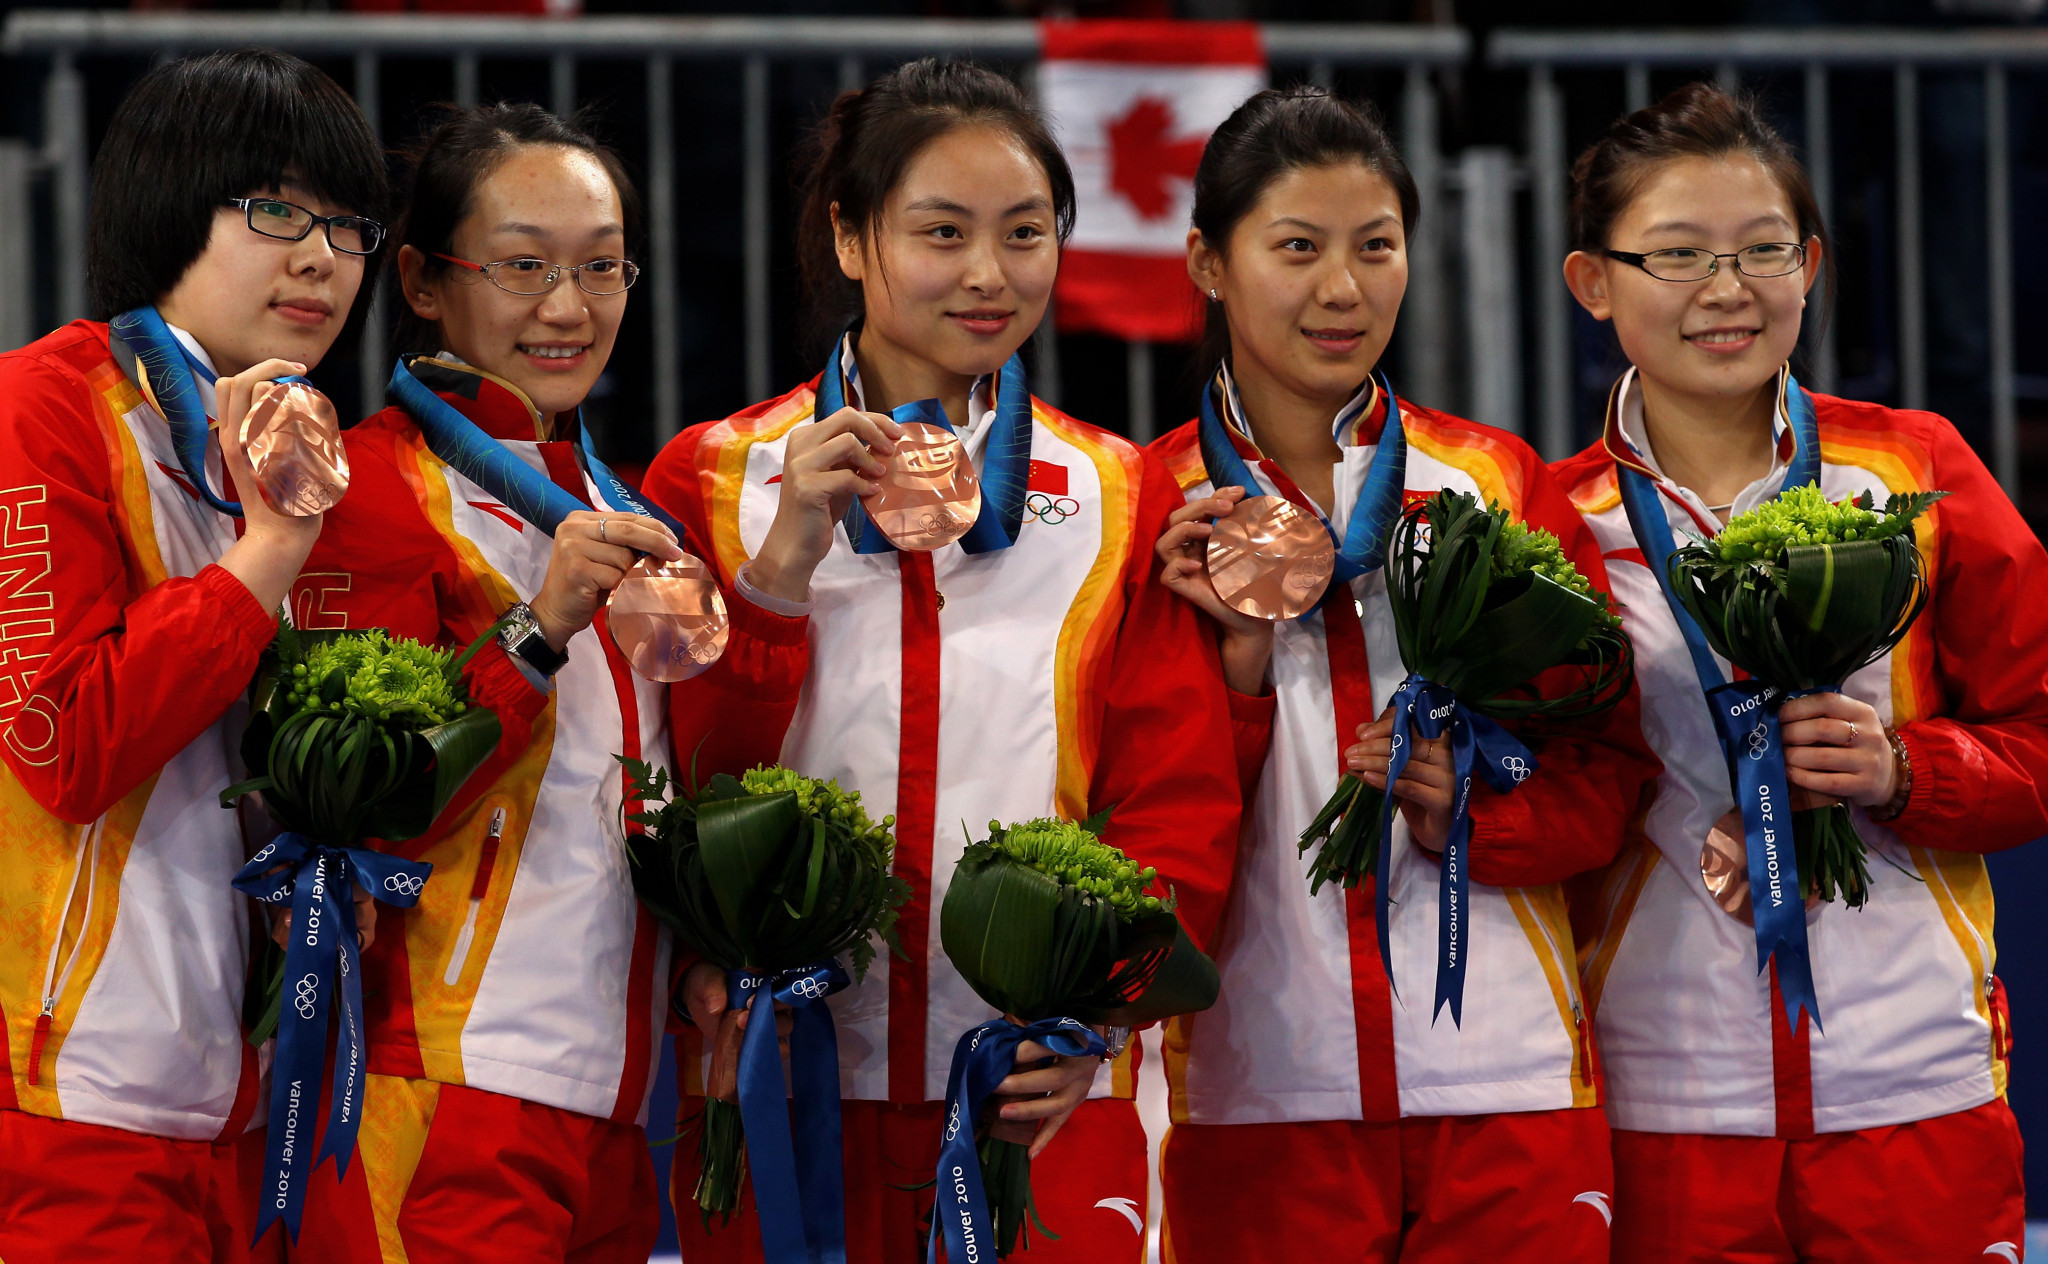 Wang Bingyu, far right, led China to an Olympic bronze medal at Vancouver 2010 ©Getty Images